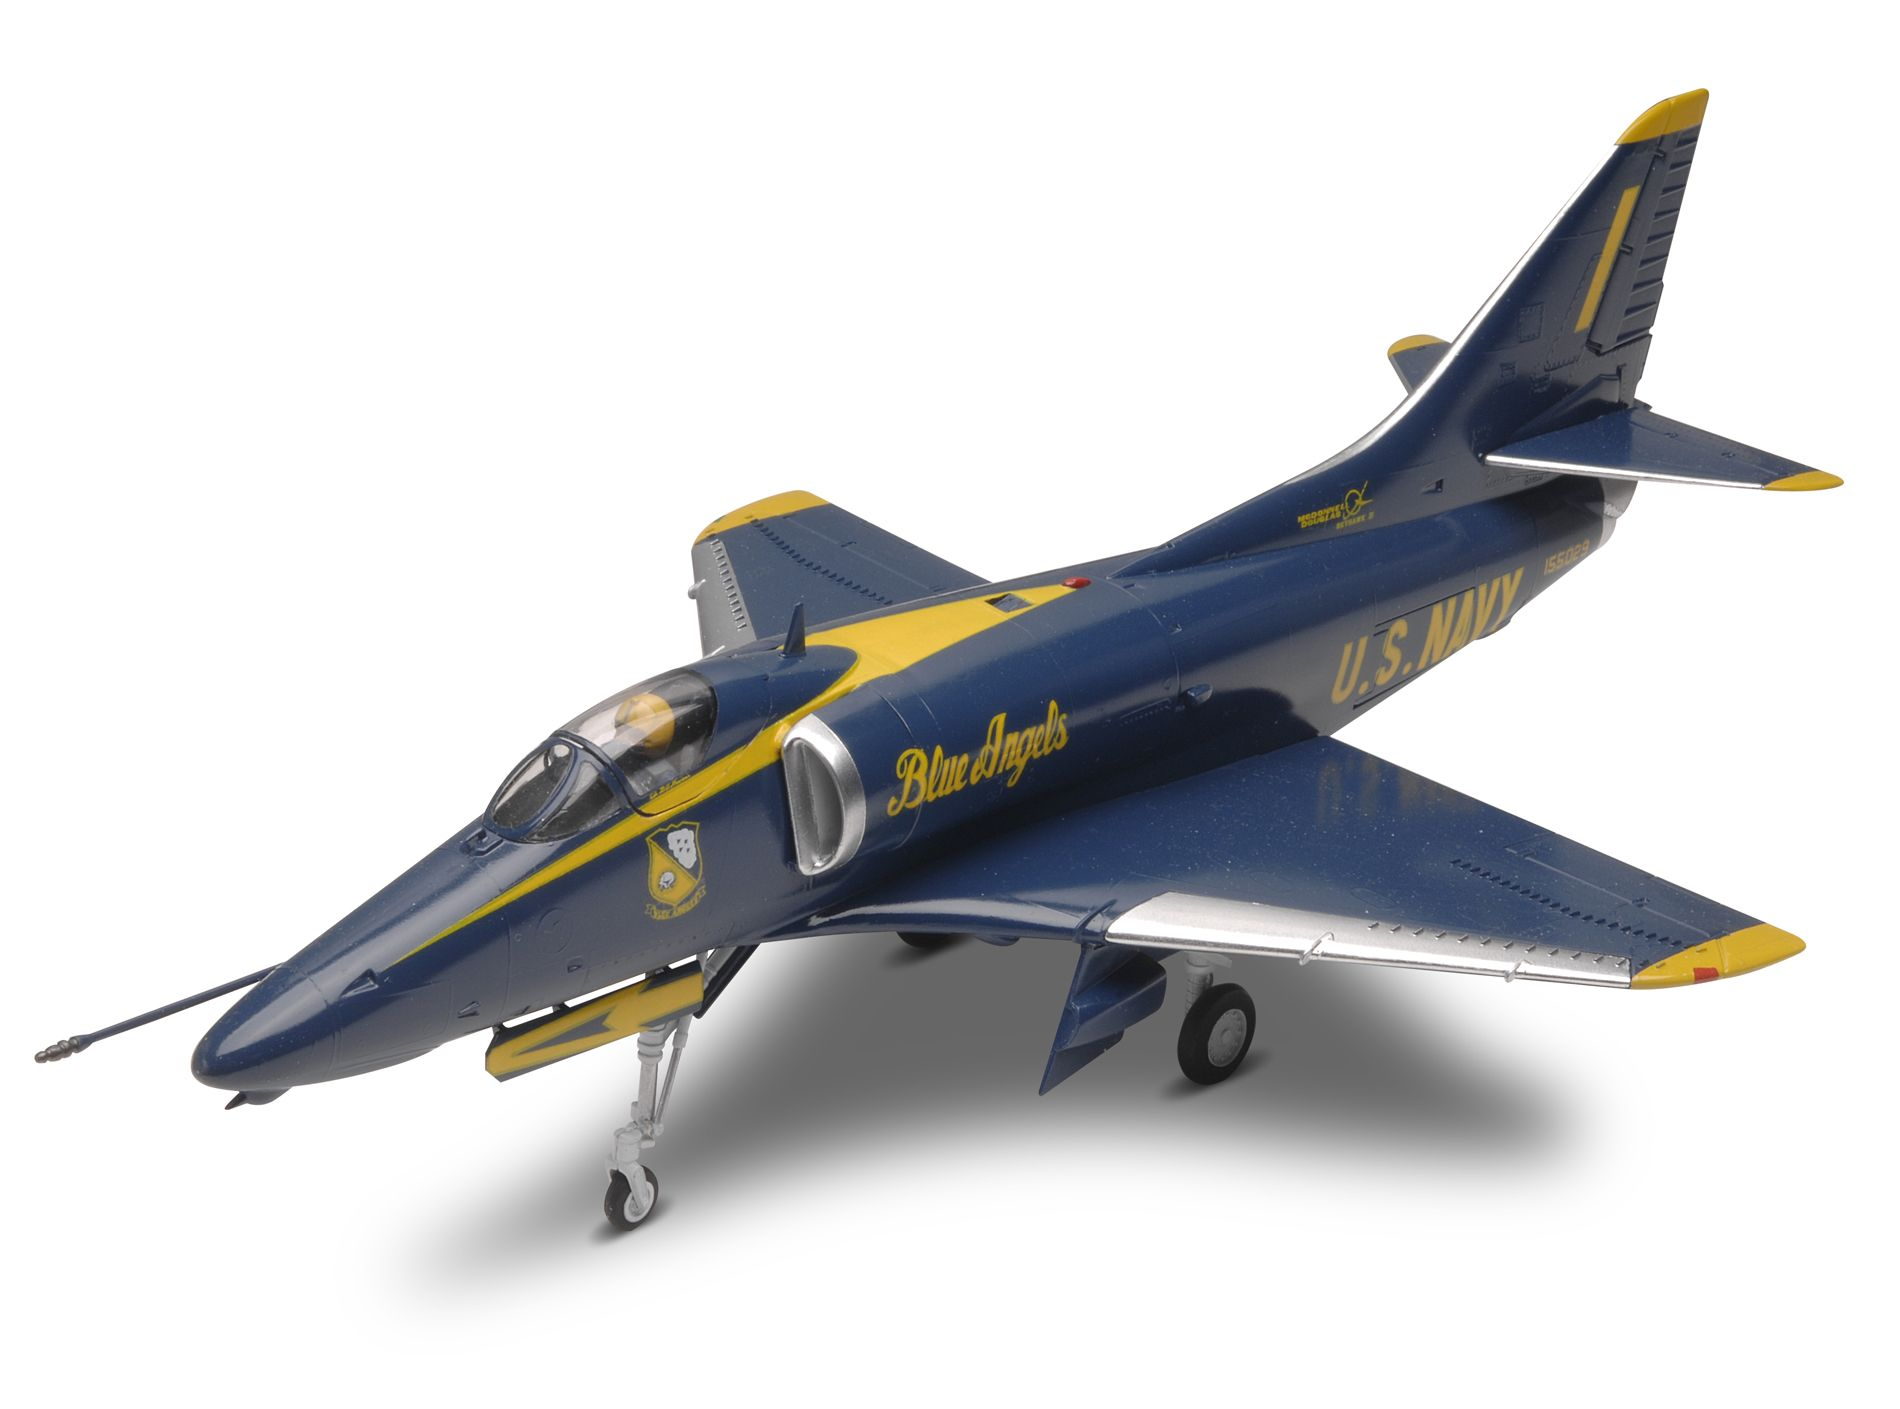 1/48 A-4 Skyhawk Blue Angels Plastic Model Kit                                                                                   at mygofer.com